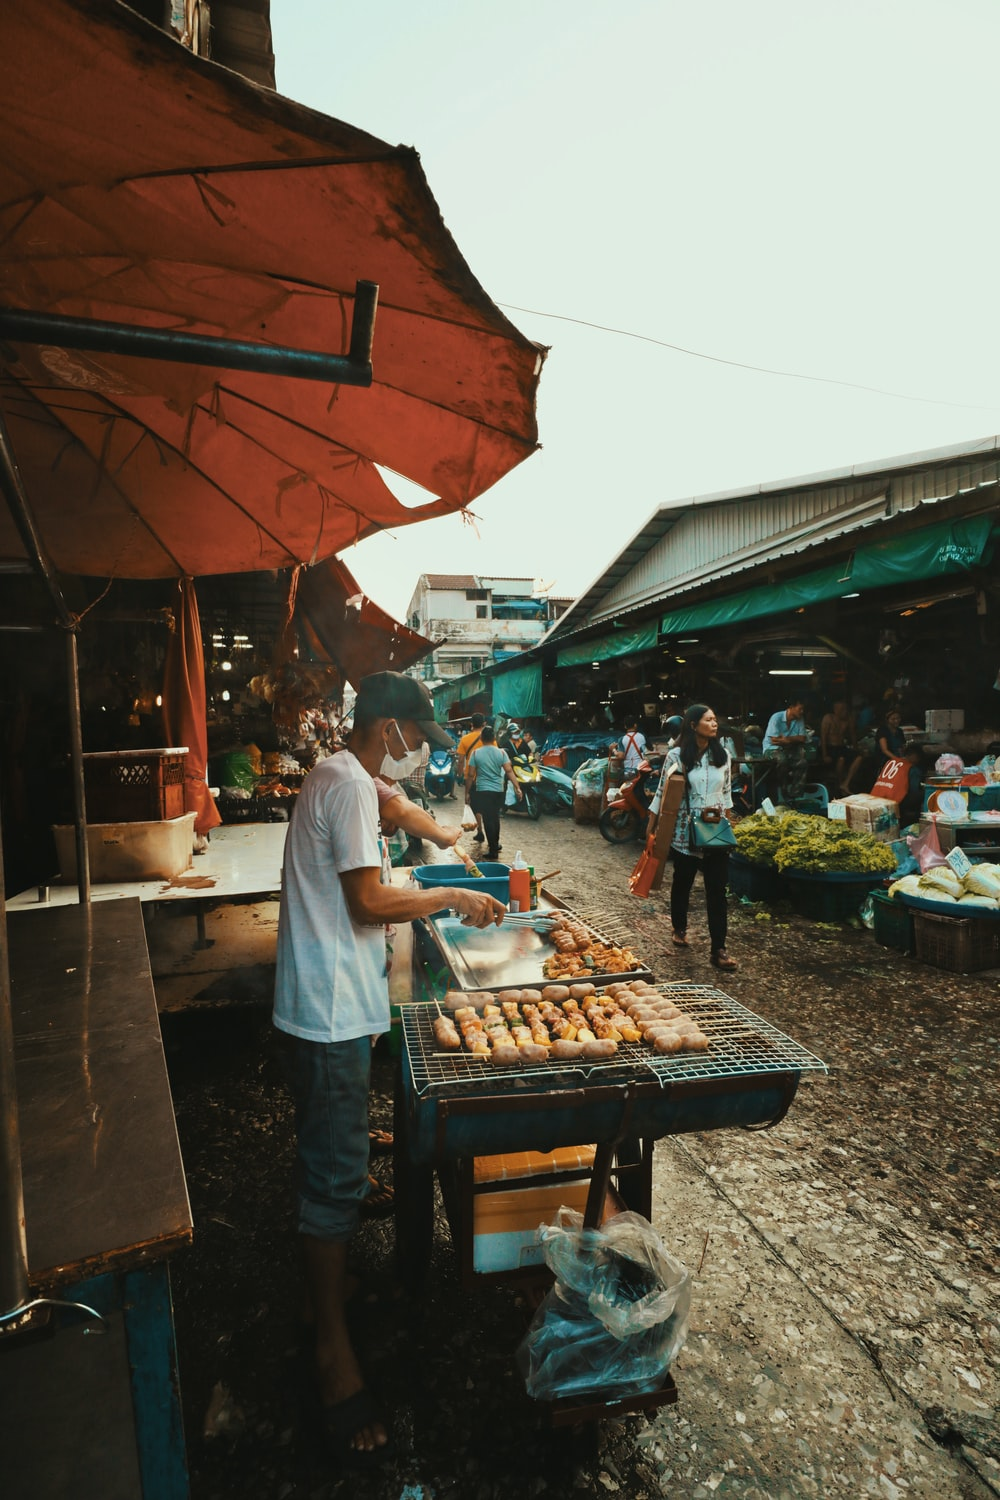 people standing in front of food stall during daytime